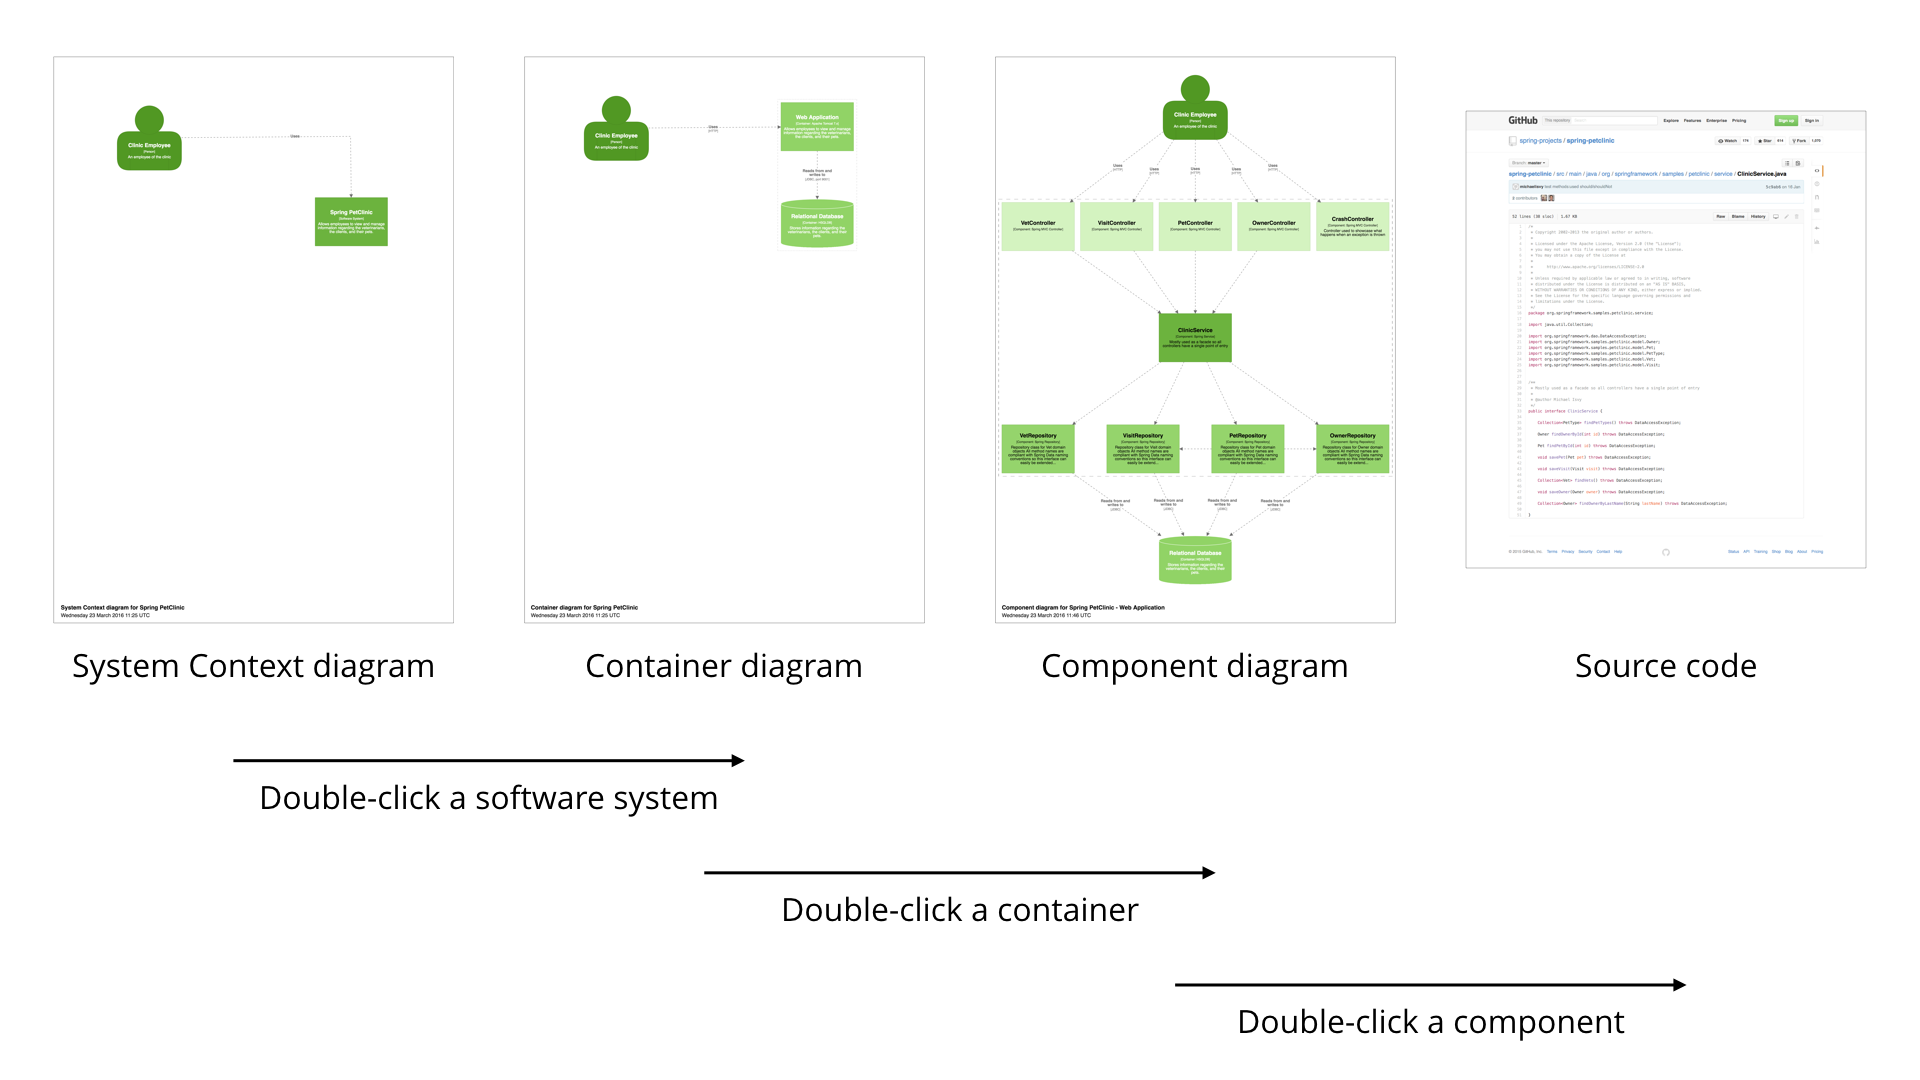 A summary of navigating diagrams by double-clicking elements